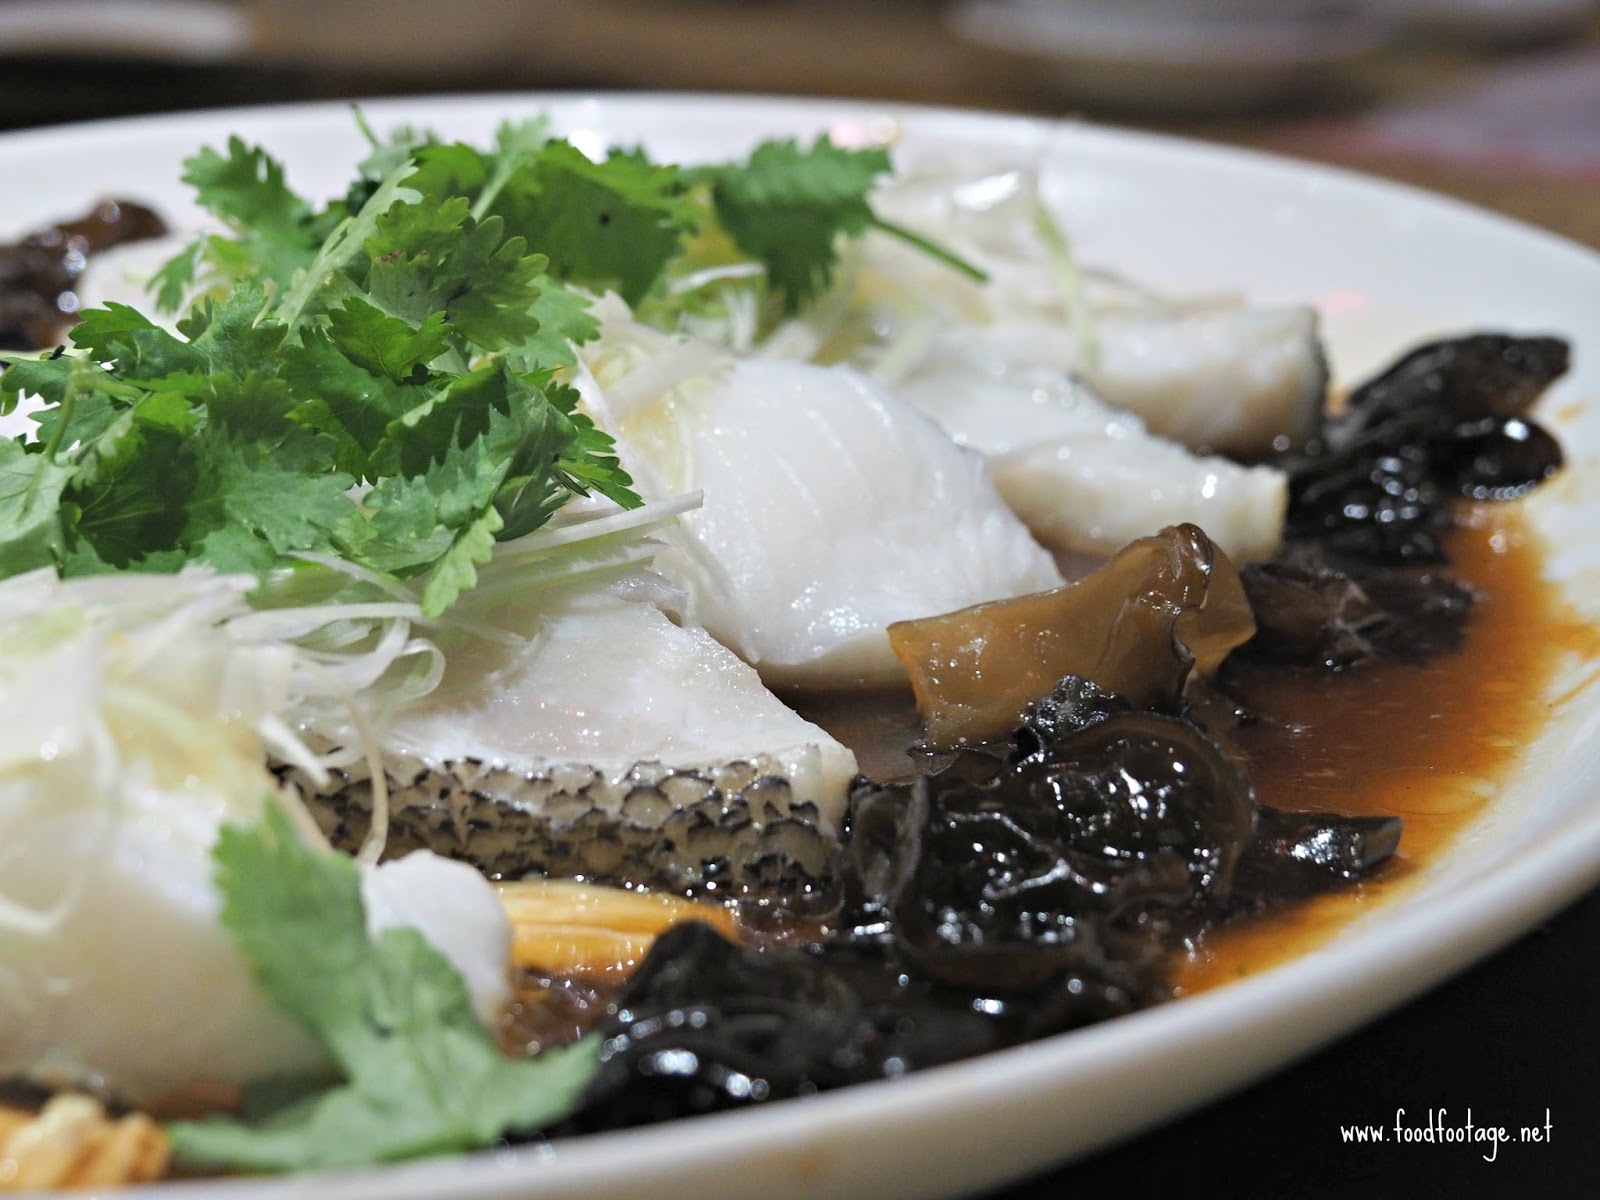 Ee chinese cuisine chinese new year fortune set menu eastin steamed cod fish with superior soya sauce and black fungus silky steamed cod fish that practically melt in your mouth with superior soya sauce and black buycottarizona Images